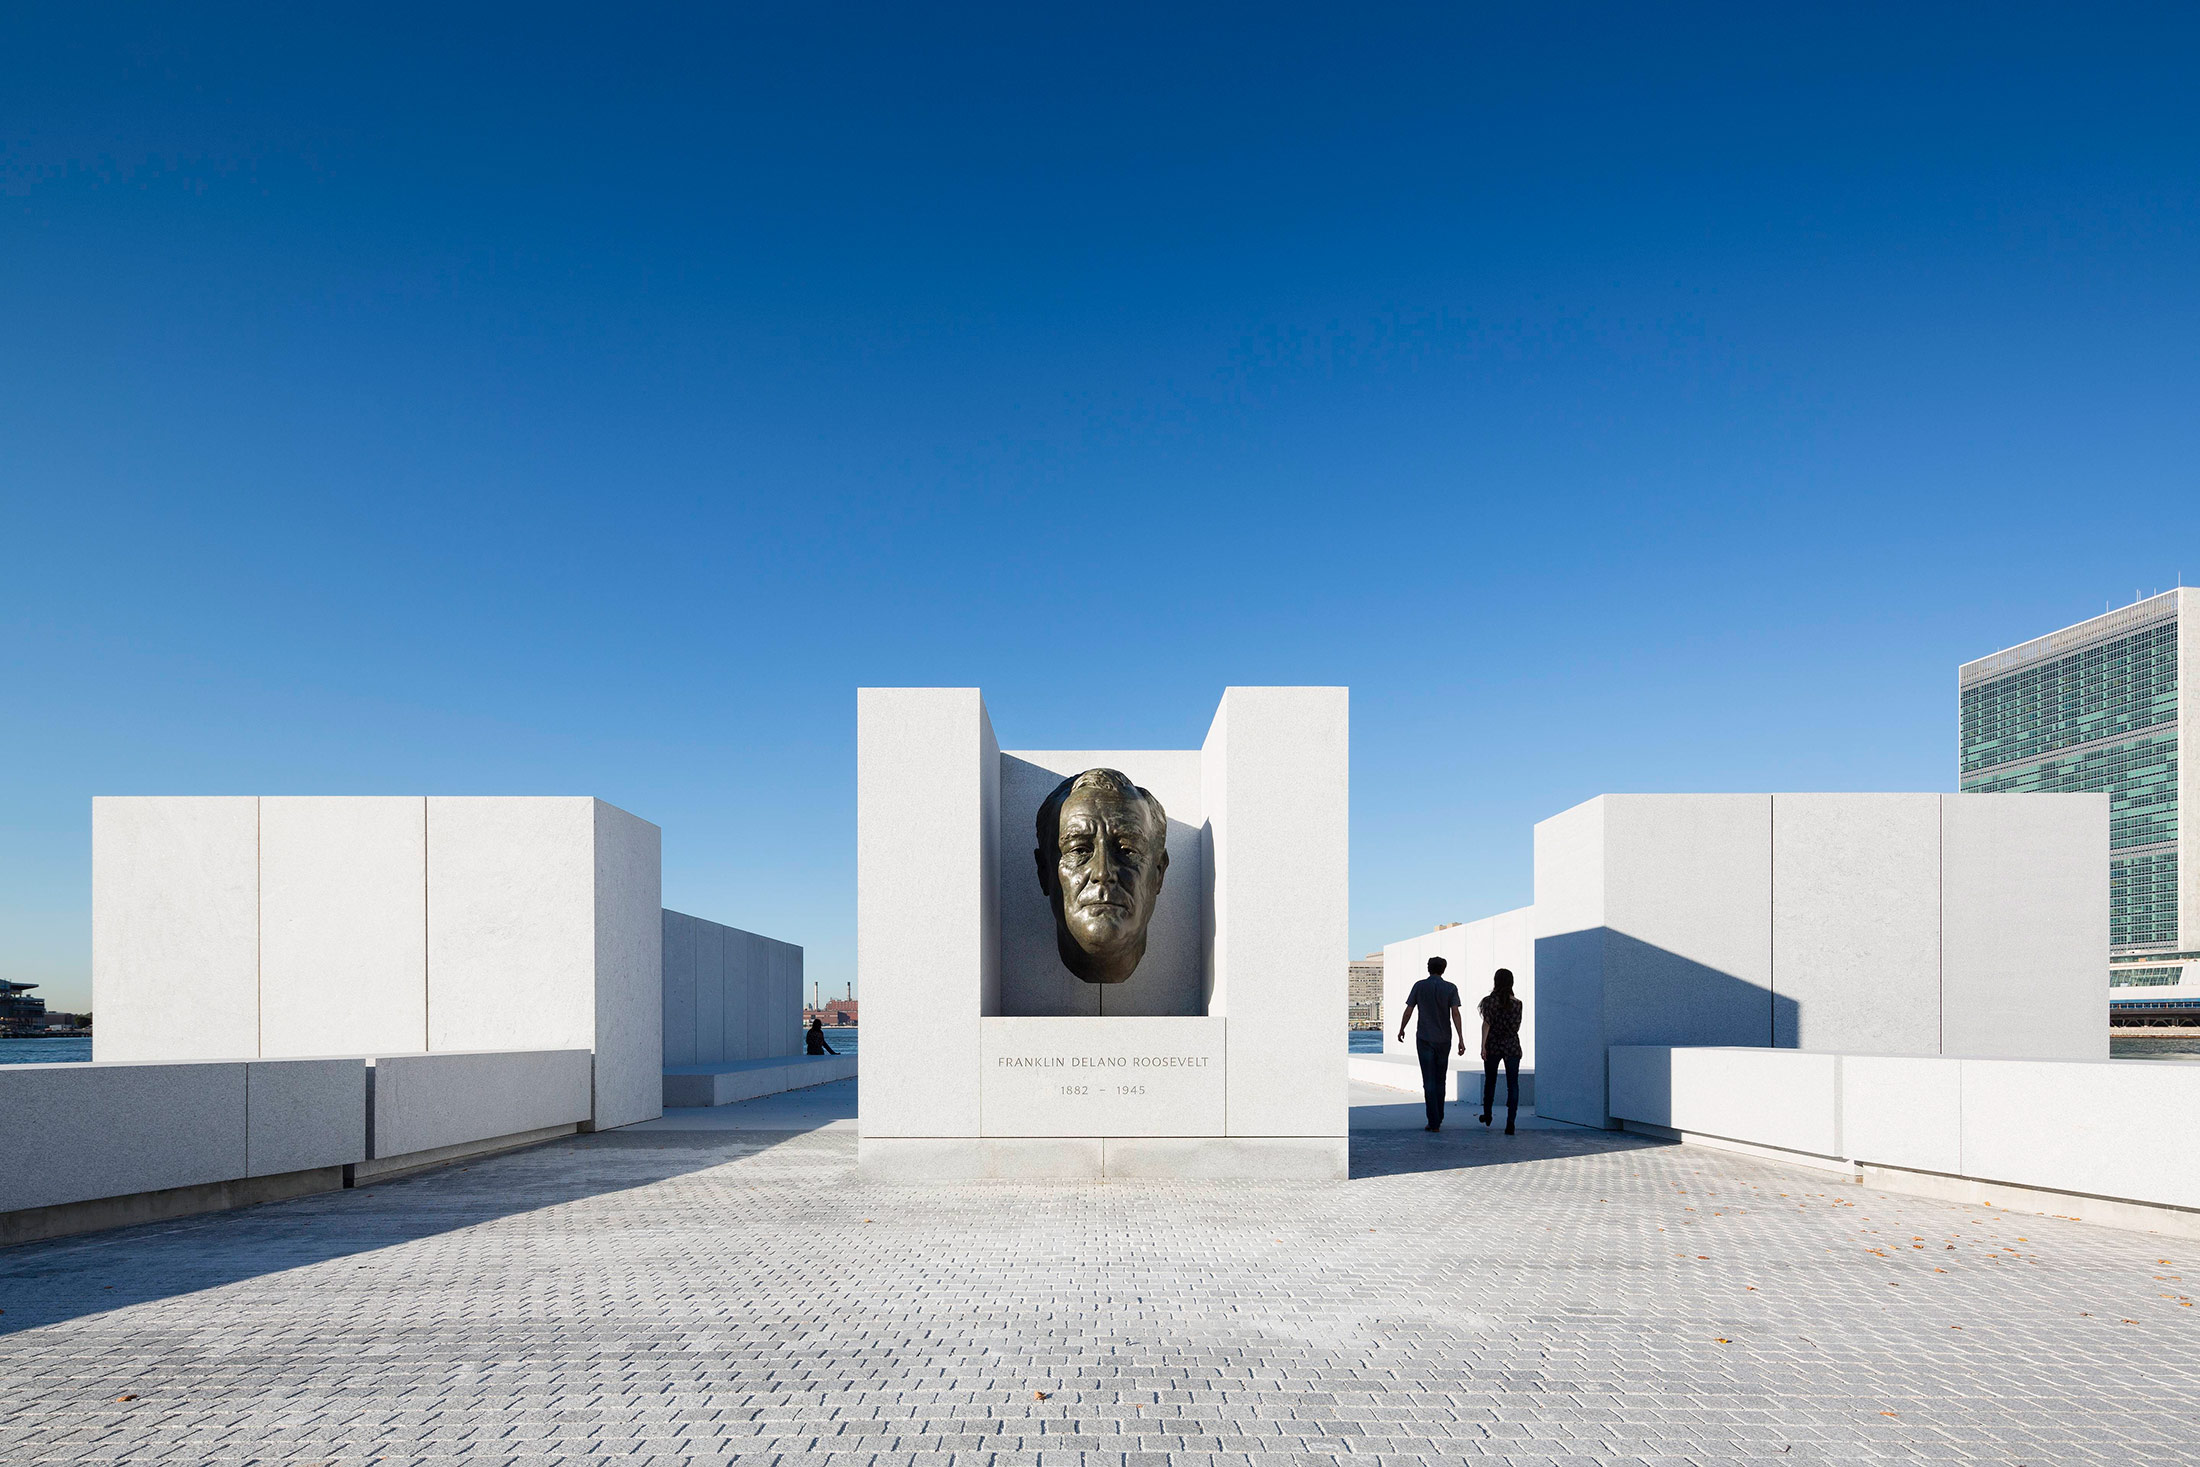 The memorial's focal point